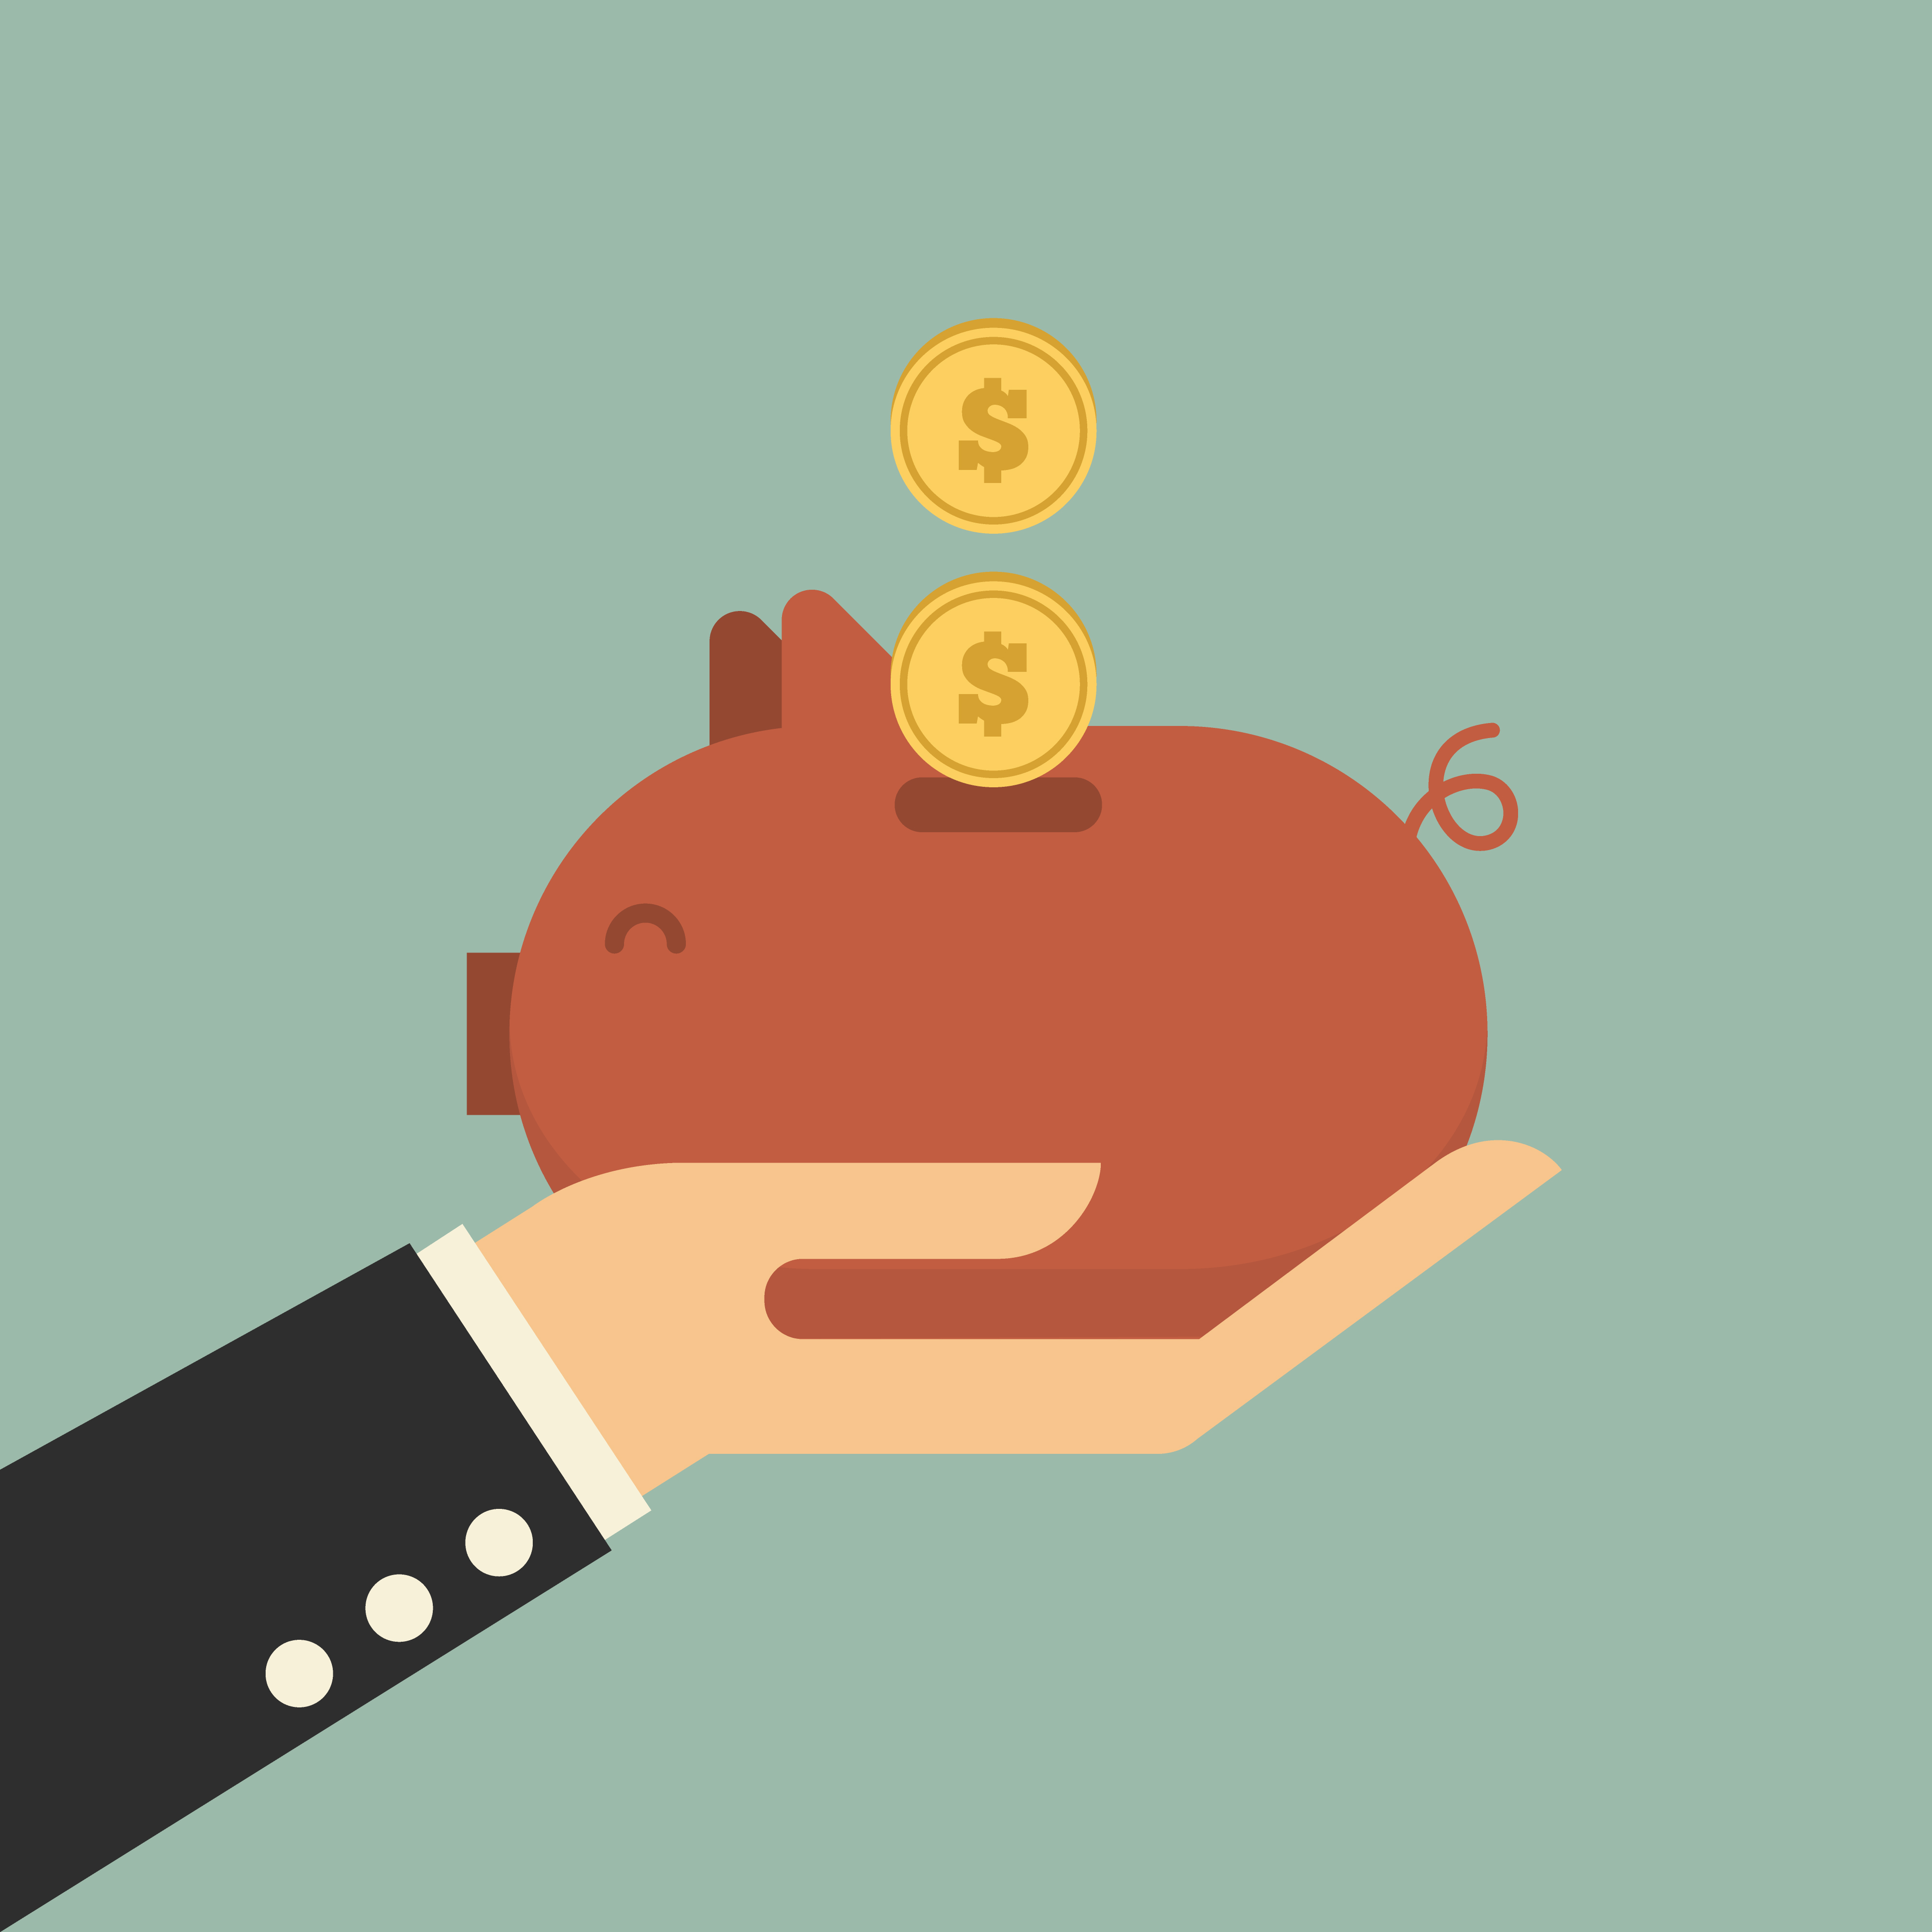 save money icon free vector art 33944 free downloads